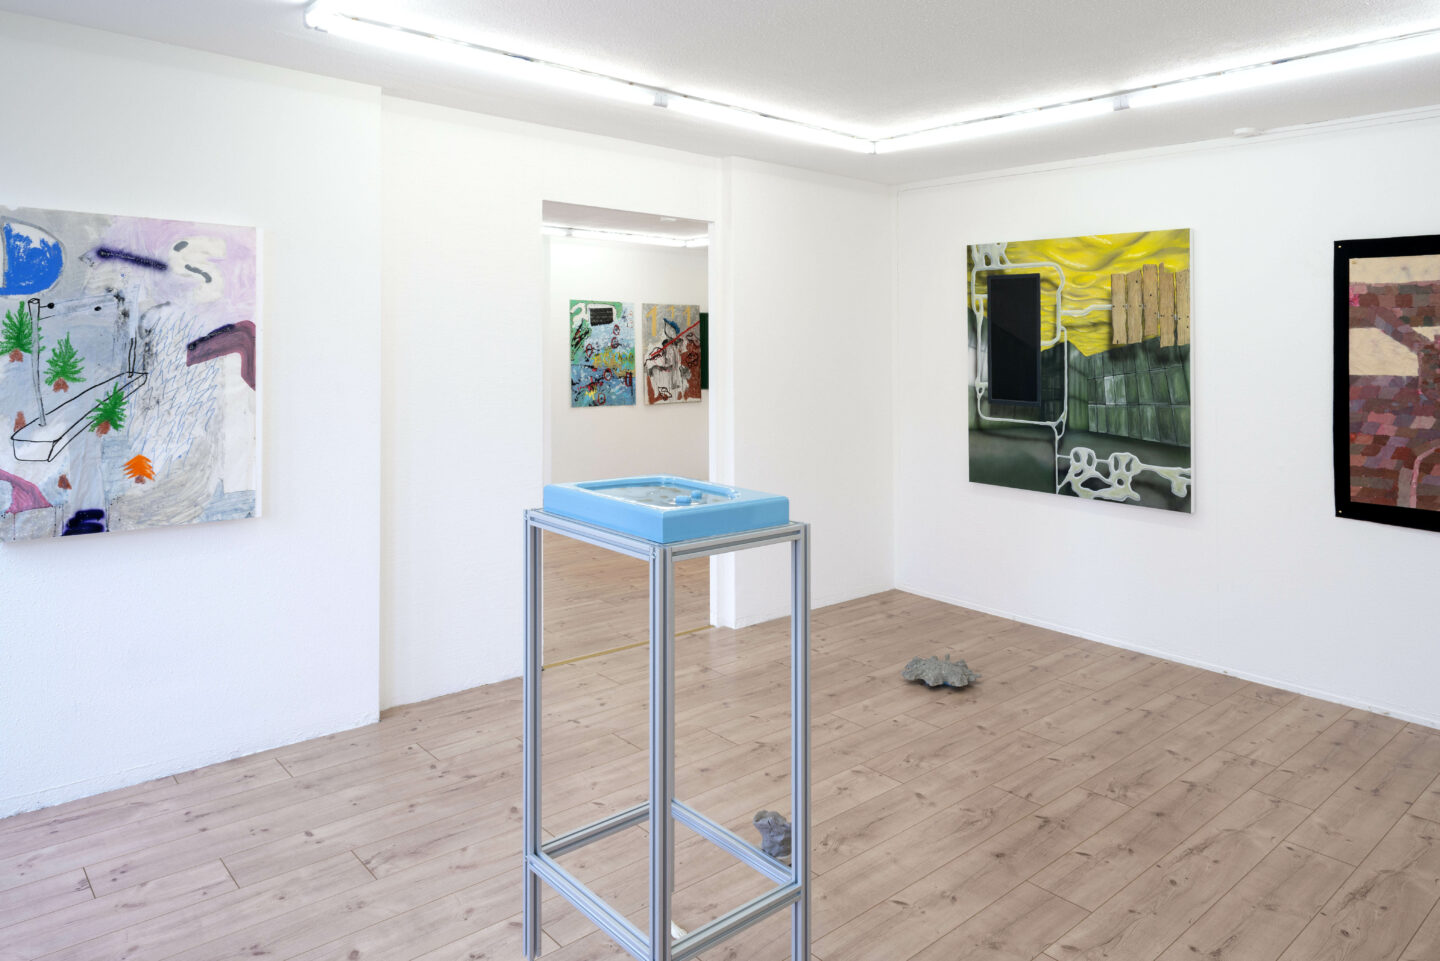 Exhibition View Ruven Stettler and Kevin Aeschbacher Groupshow «Module für Ordnung» at HAMLET, Oerlikon, Zurich, 2019 / Photo: Flavio Karrer / Courtesy: the artist and HAMLET